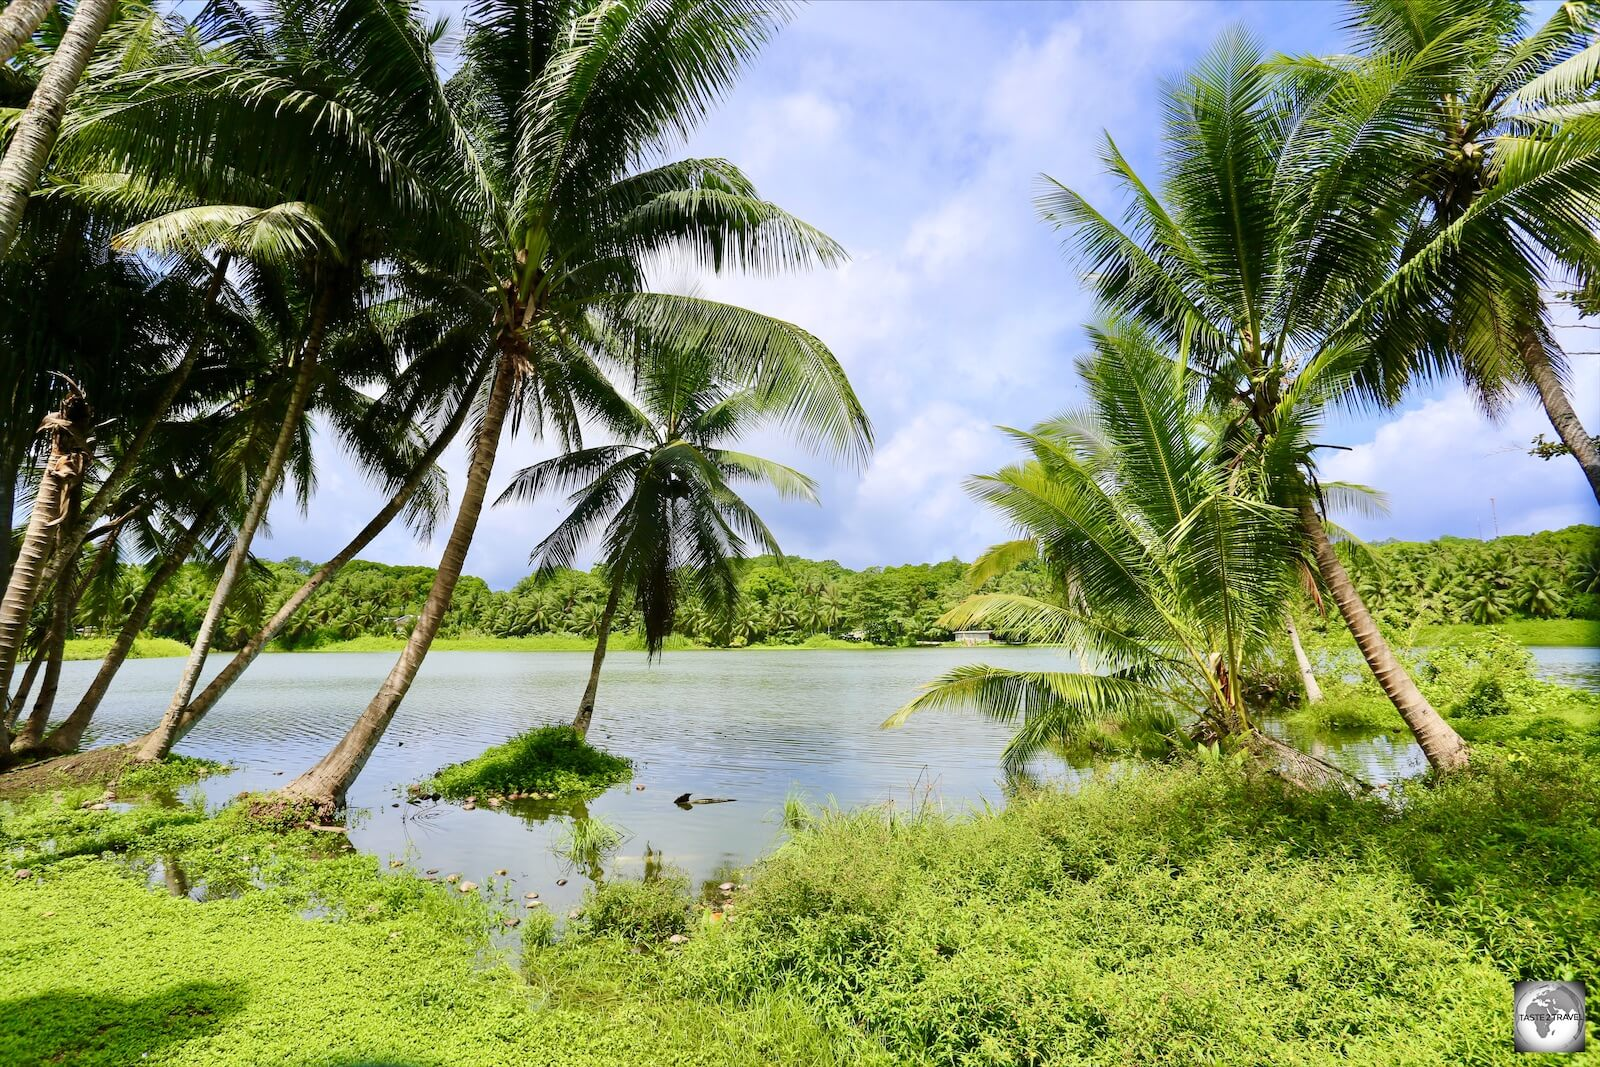 Tiny Buada lagoon has an average depth of 24 metres, with a maximum depth of 78 metres.